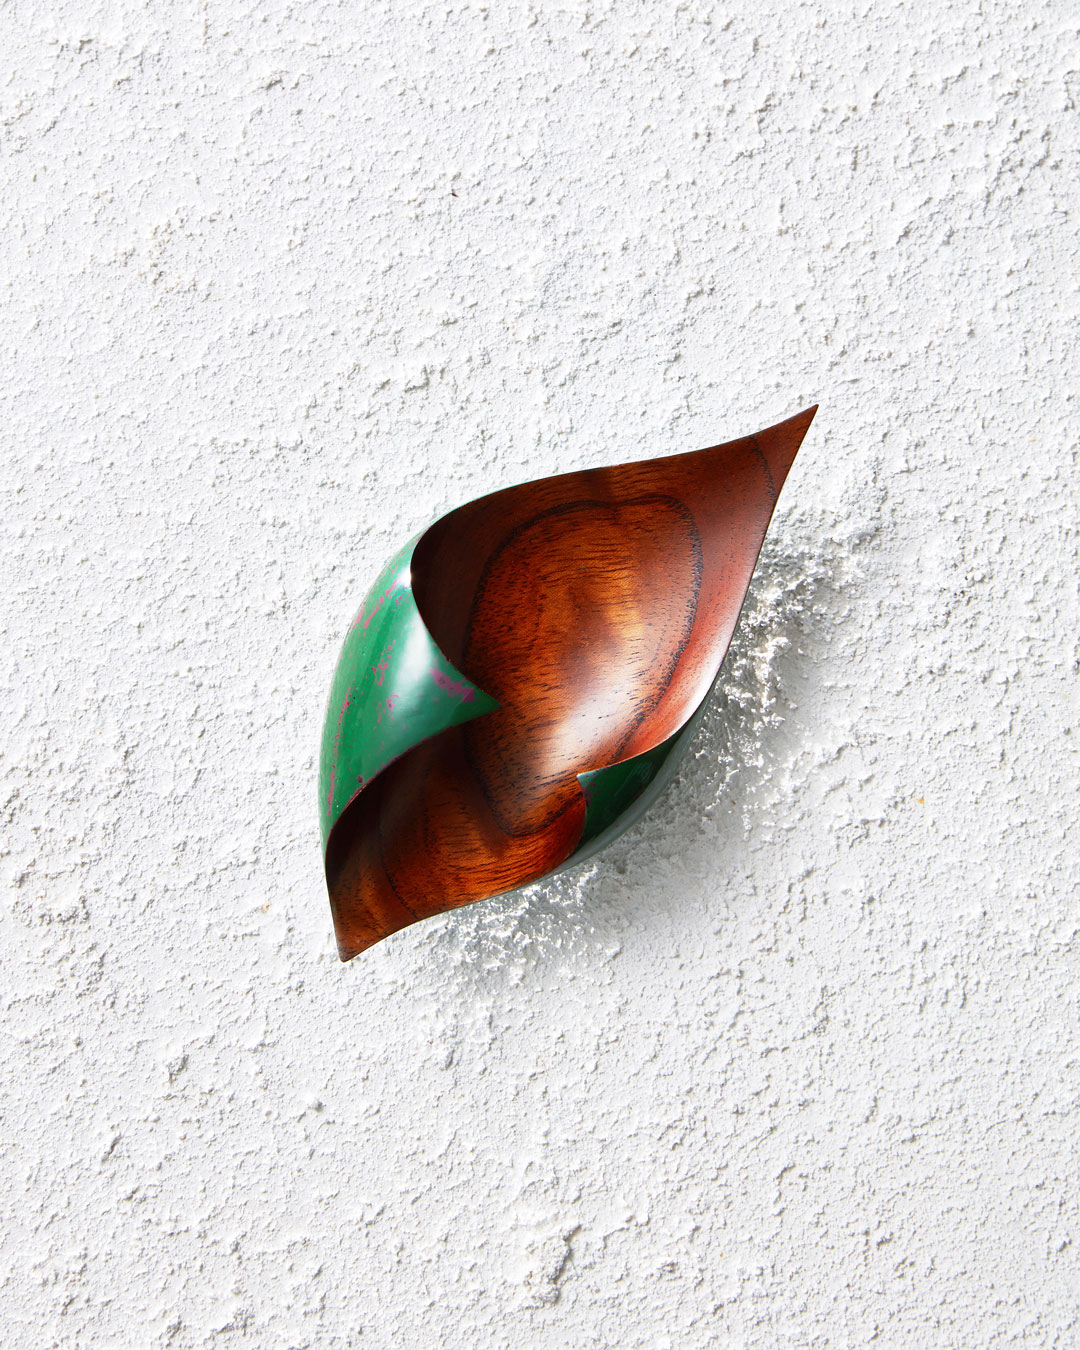 Joo Hyung Park, Confluence 4, 2018, brooch; Chinaberry wood, ottchil (lacquer), silver, 150 x 71 x 50 mm, €975